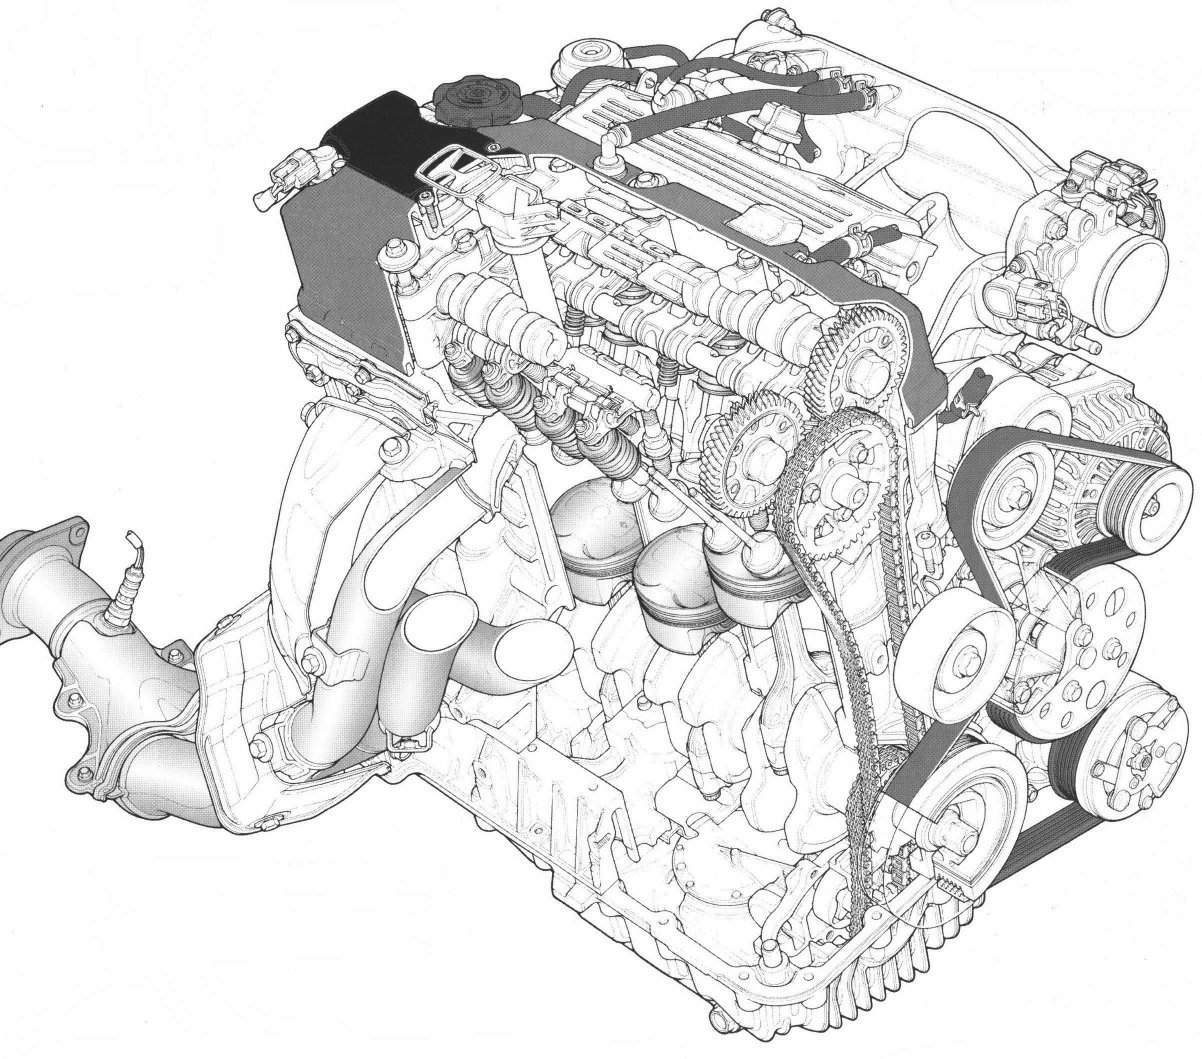 Honda S2000 Engine Diagram Wiring Library Blueprint